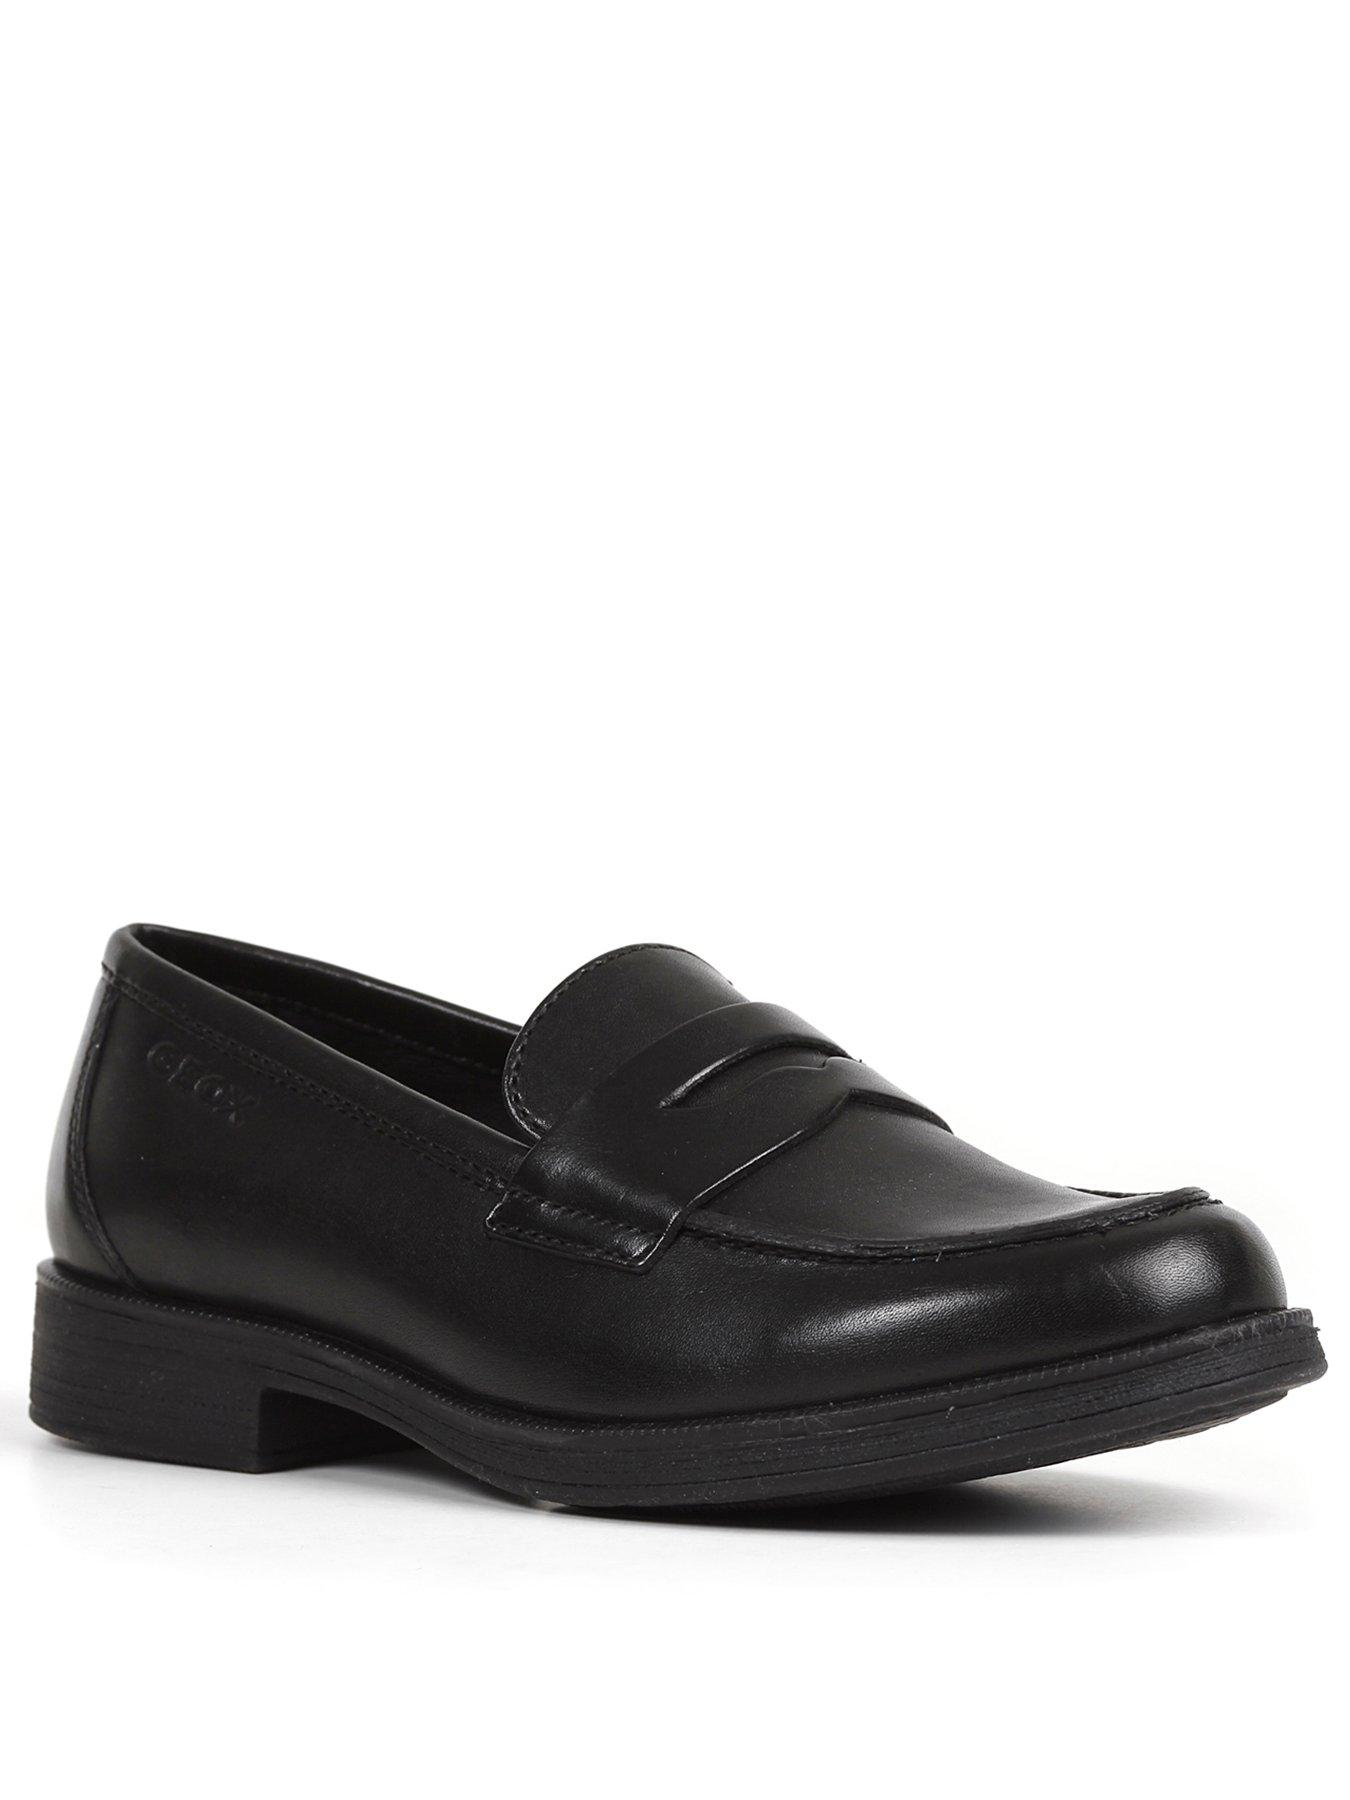 geox black loafers